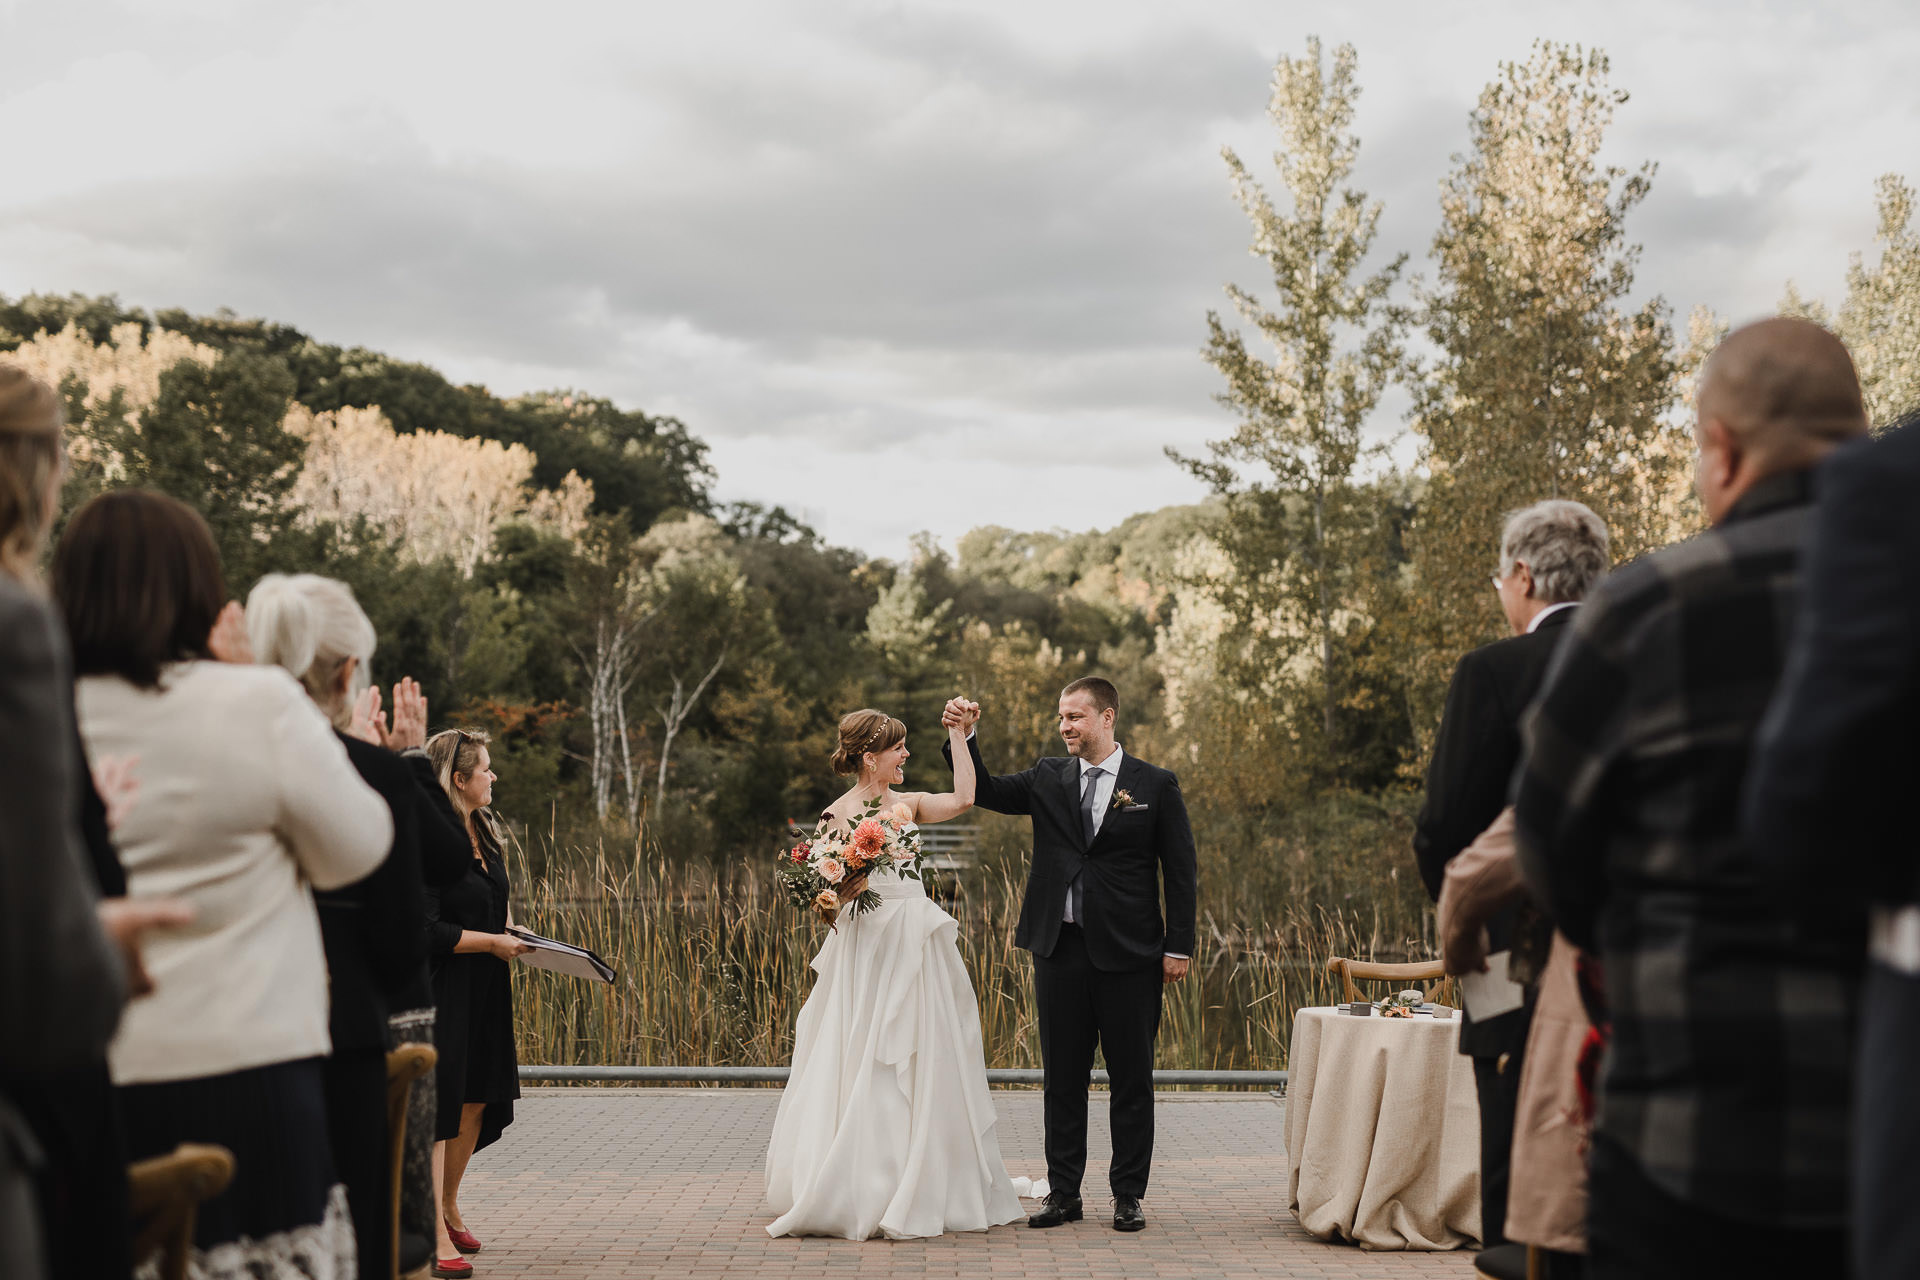 Evergreen Brickworks wedding photographer - bride and groom celebrate